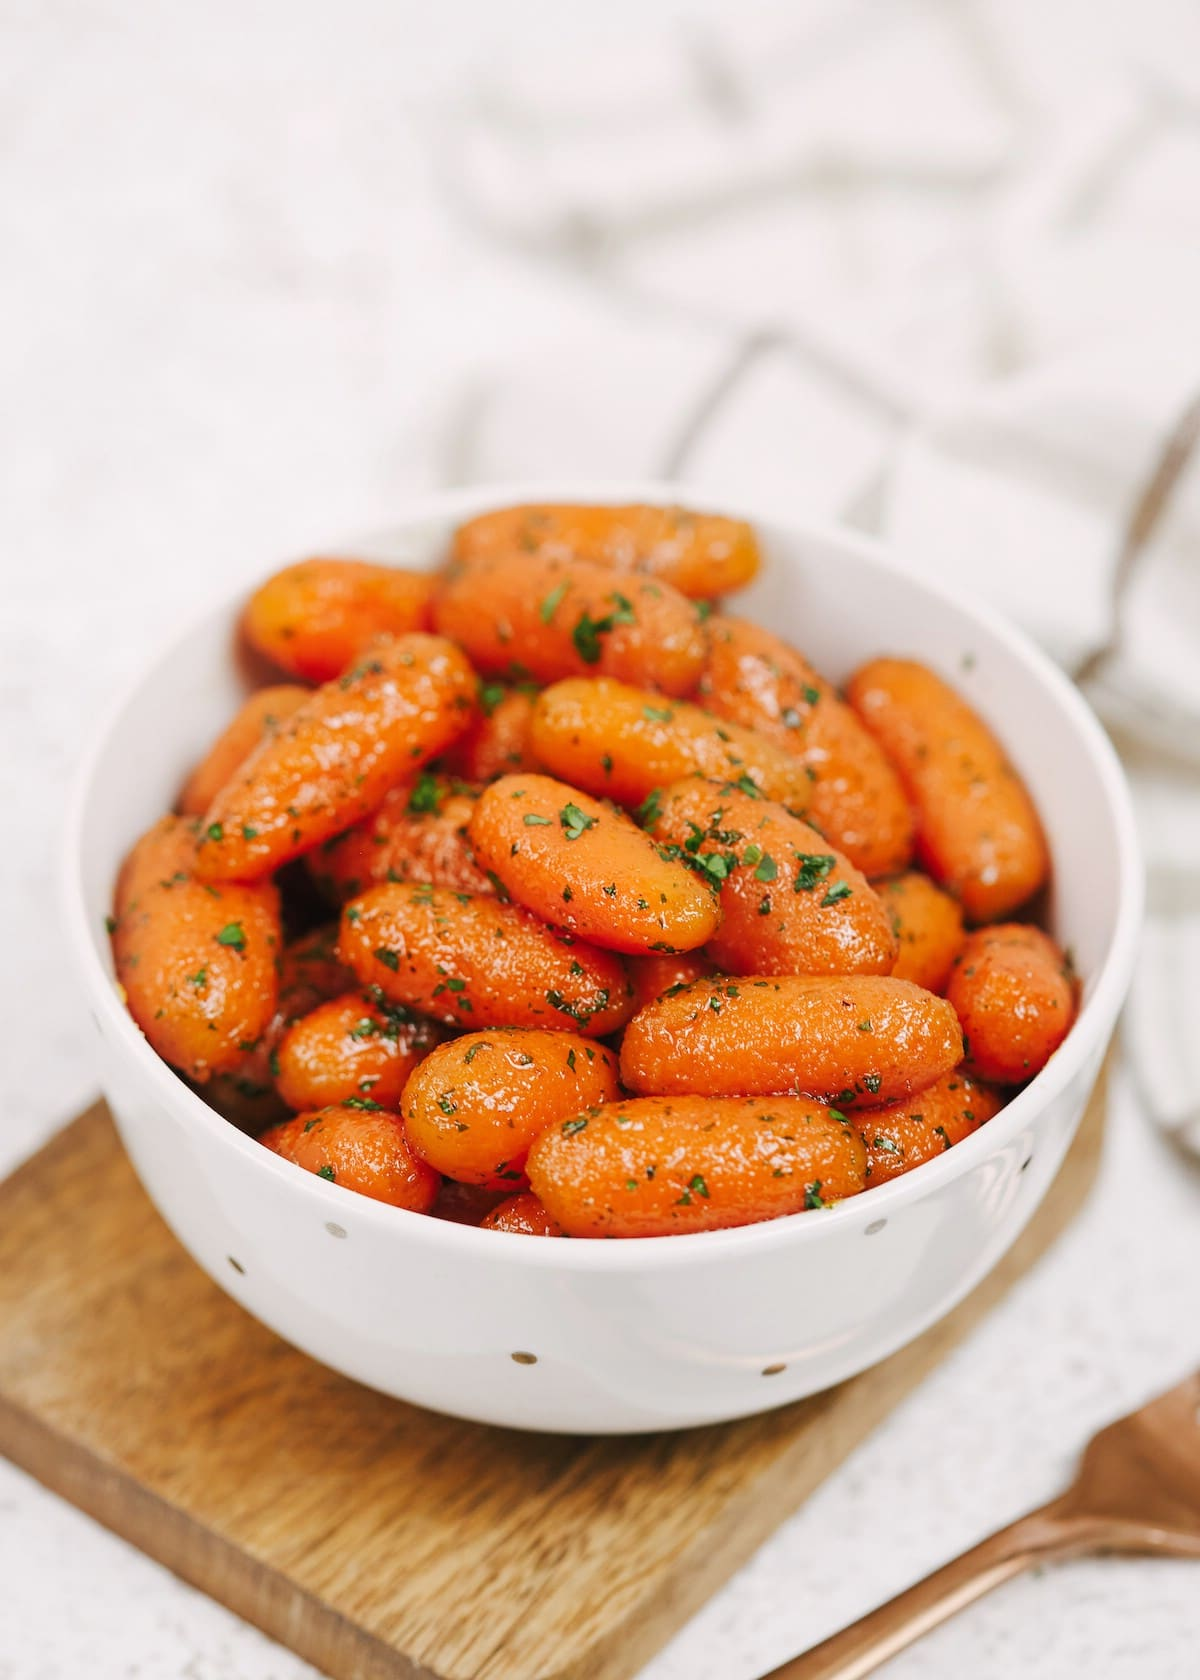 Bowl of candied carrots with parsley on top